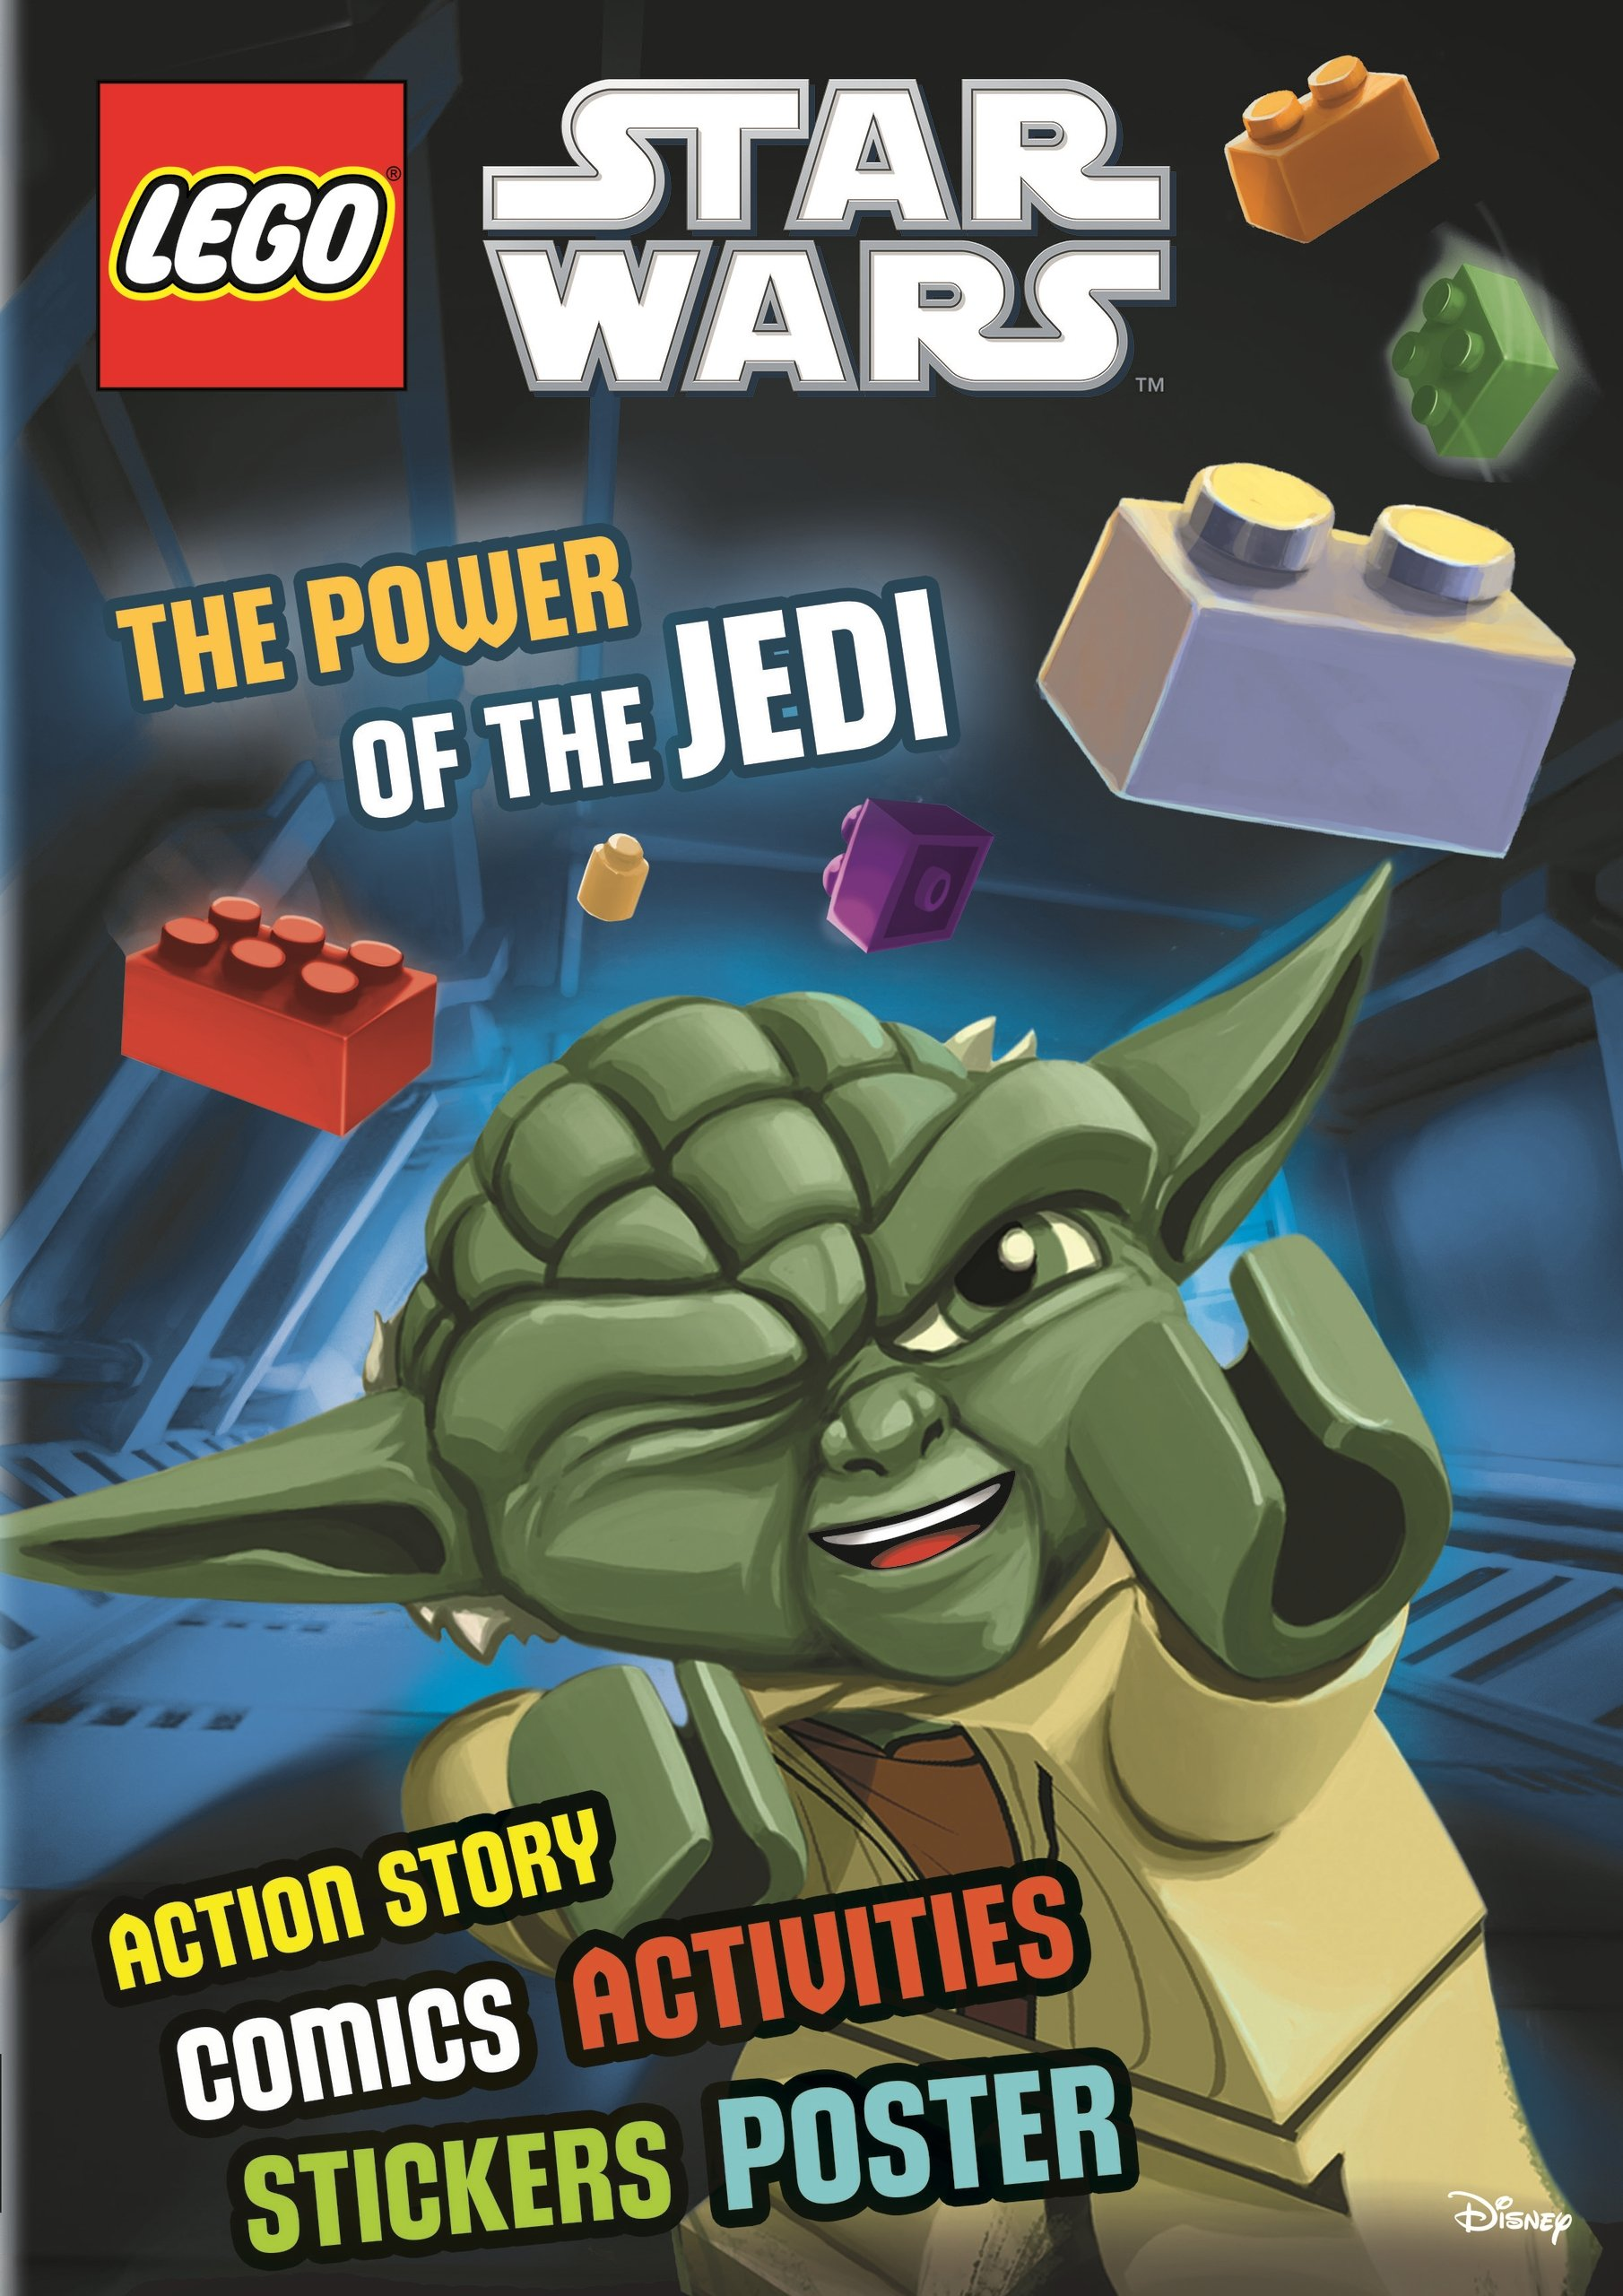 Lego Star Wars: The Power of the Jedi